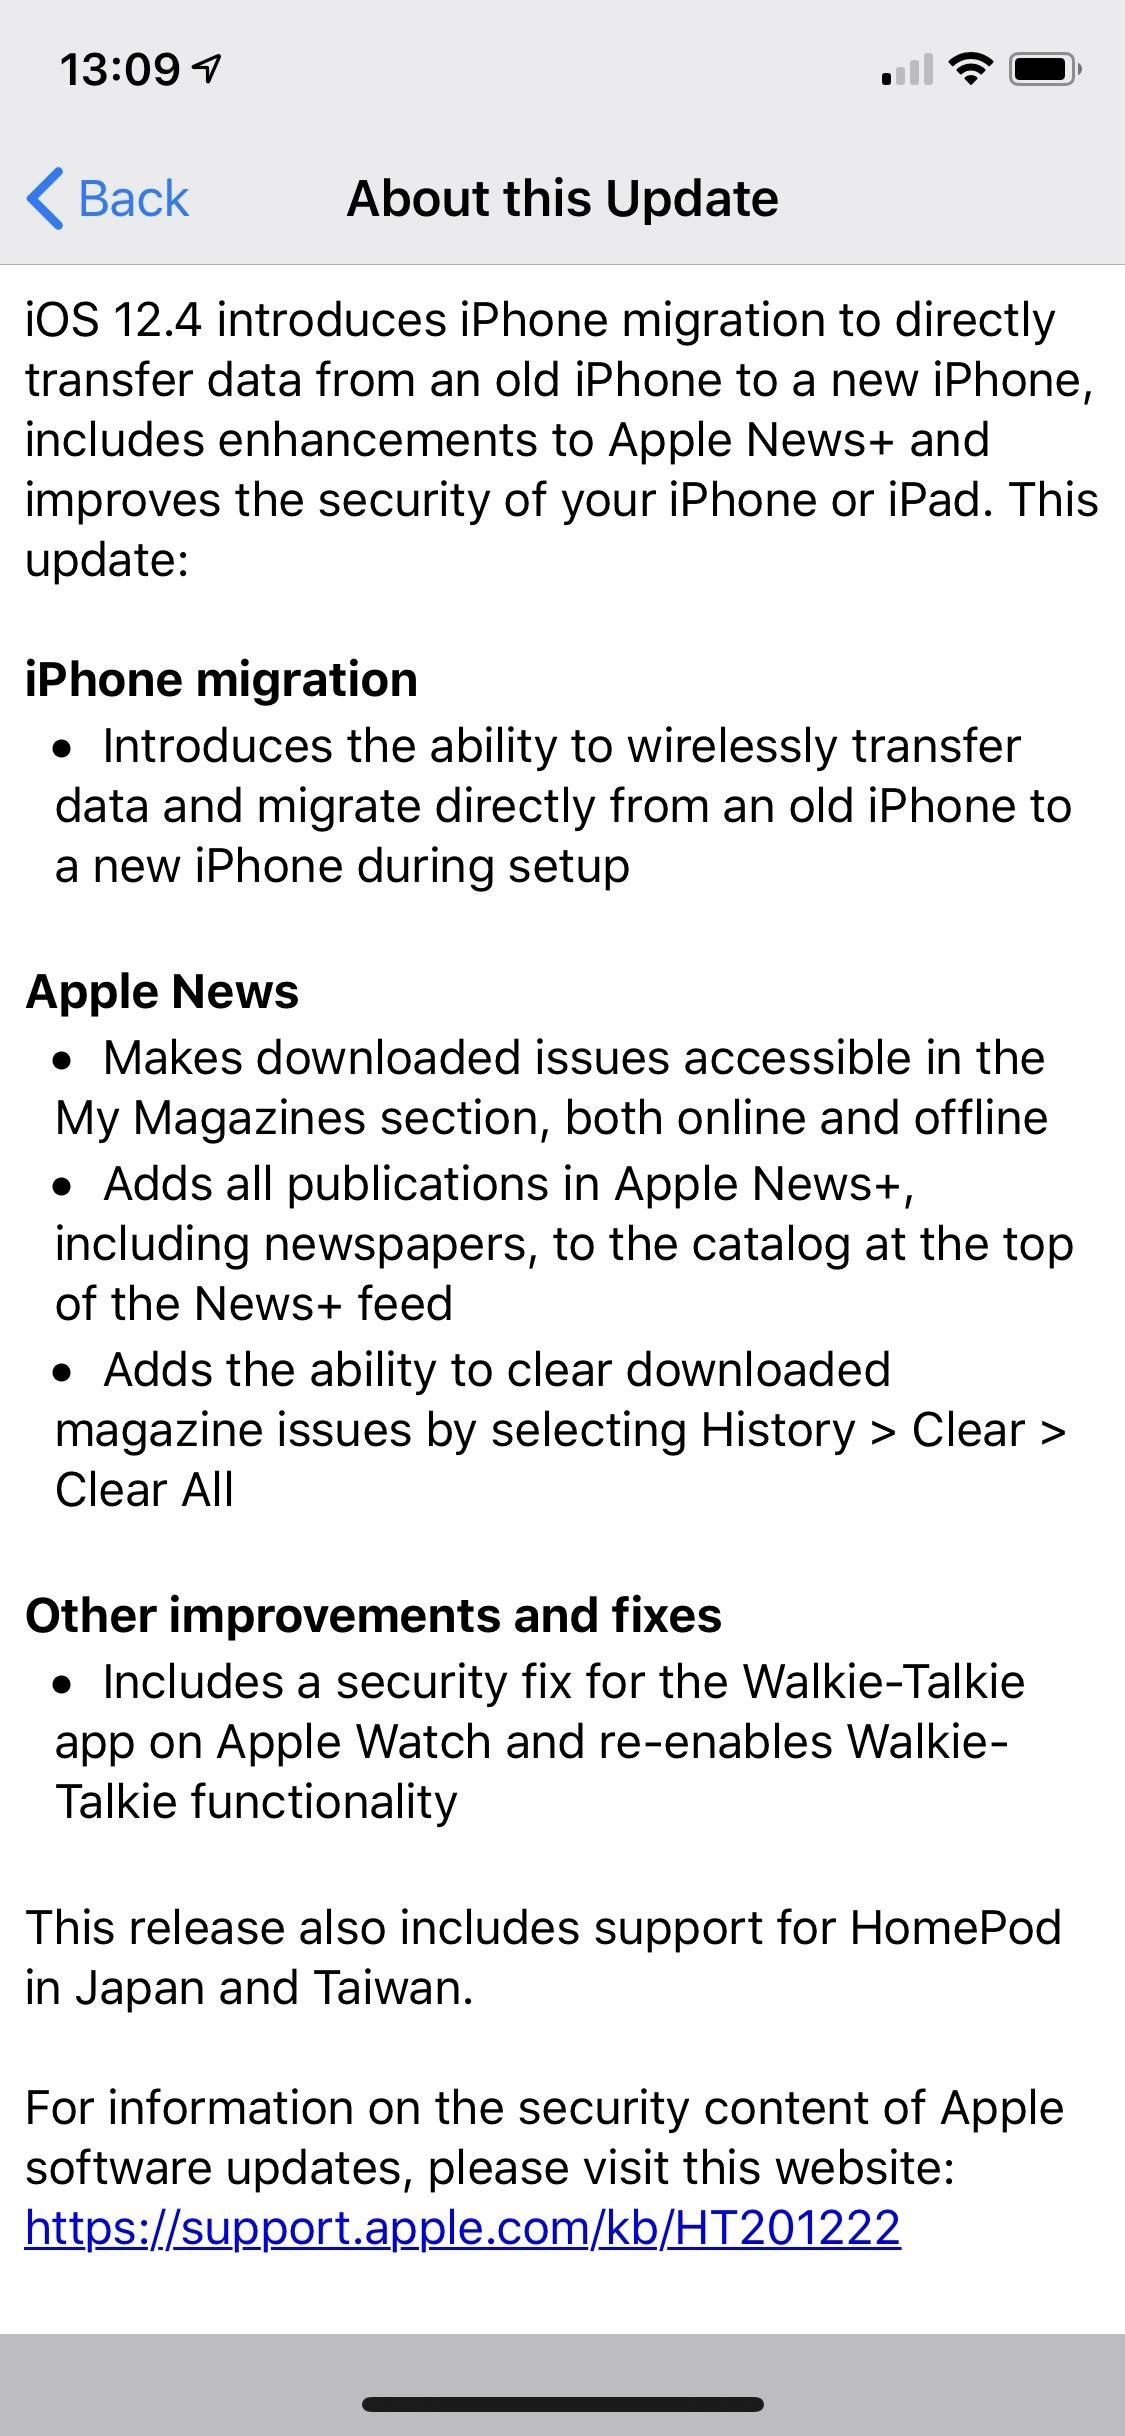 Apple released iOS 12.4 for the iPhone with the migration tool, Apple News + Improvements & More